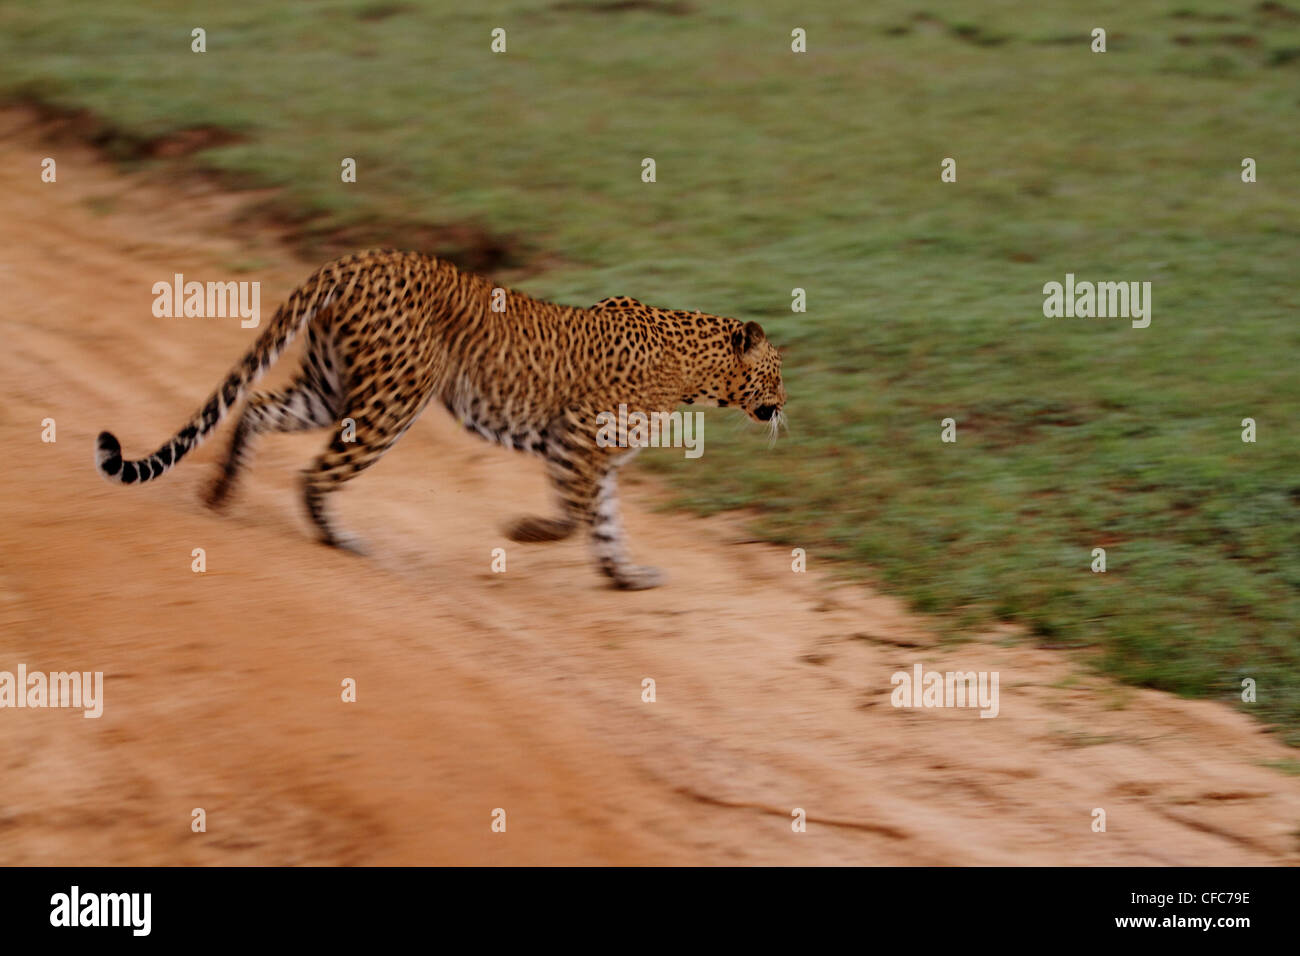 leopard running stock photos  u0026 leopard running stock images